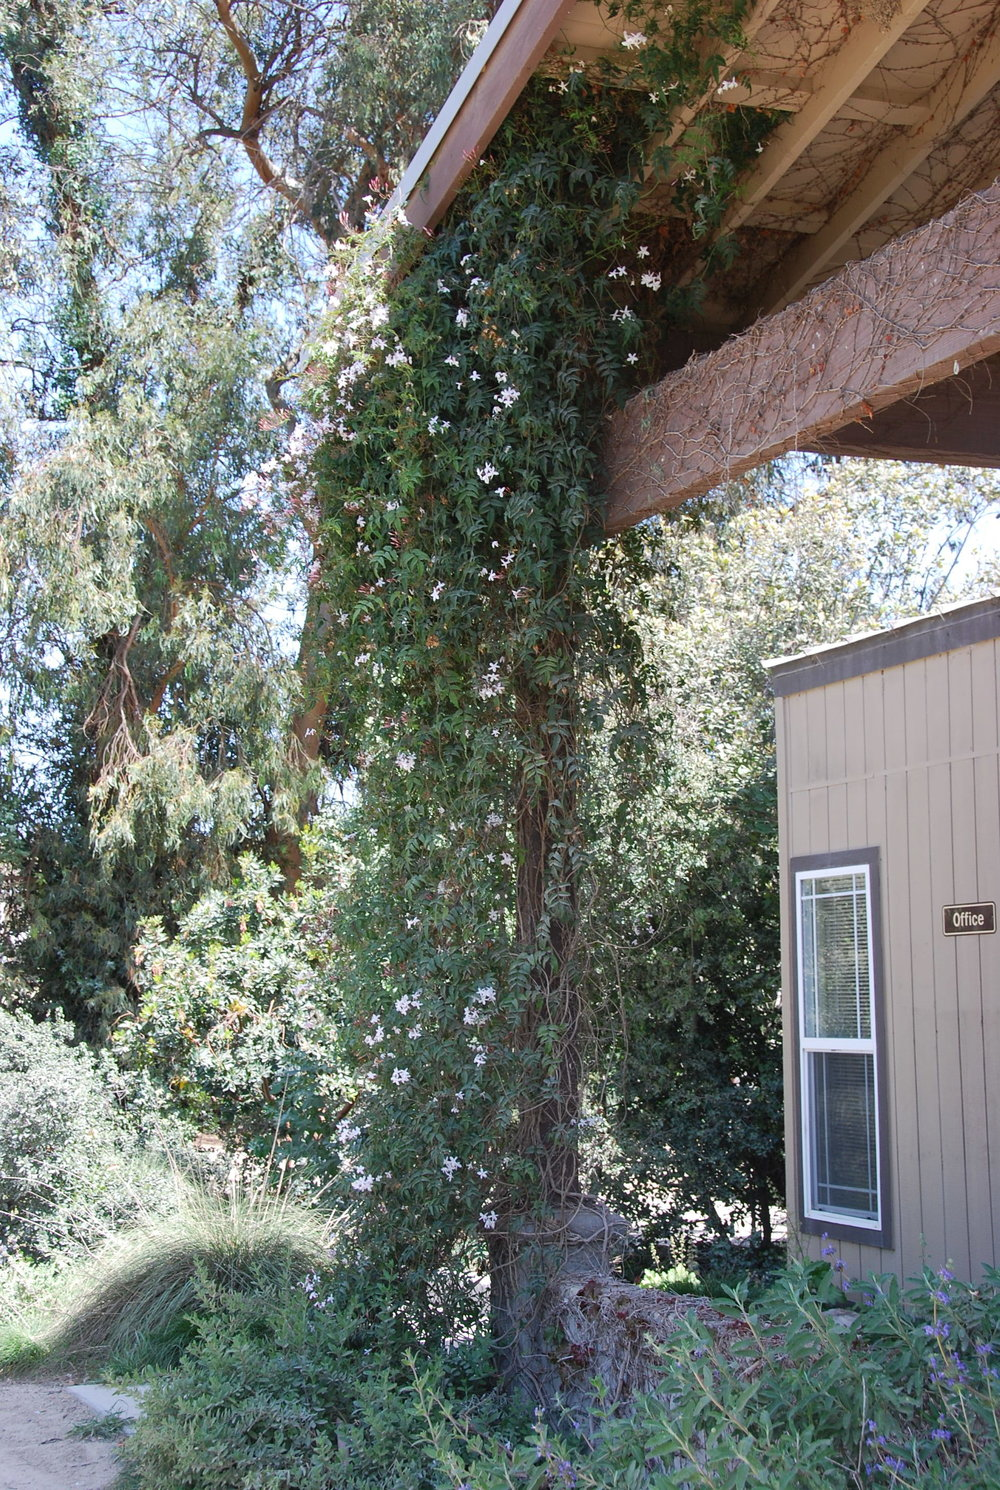 Jasmine blooming by the Spirit Office